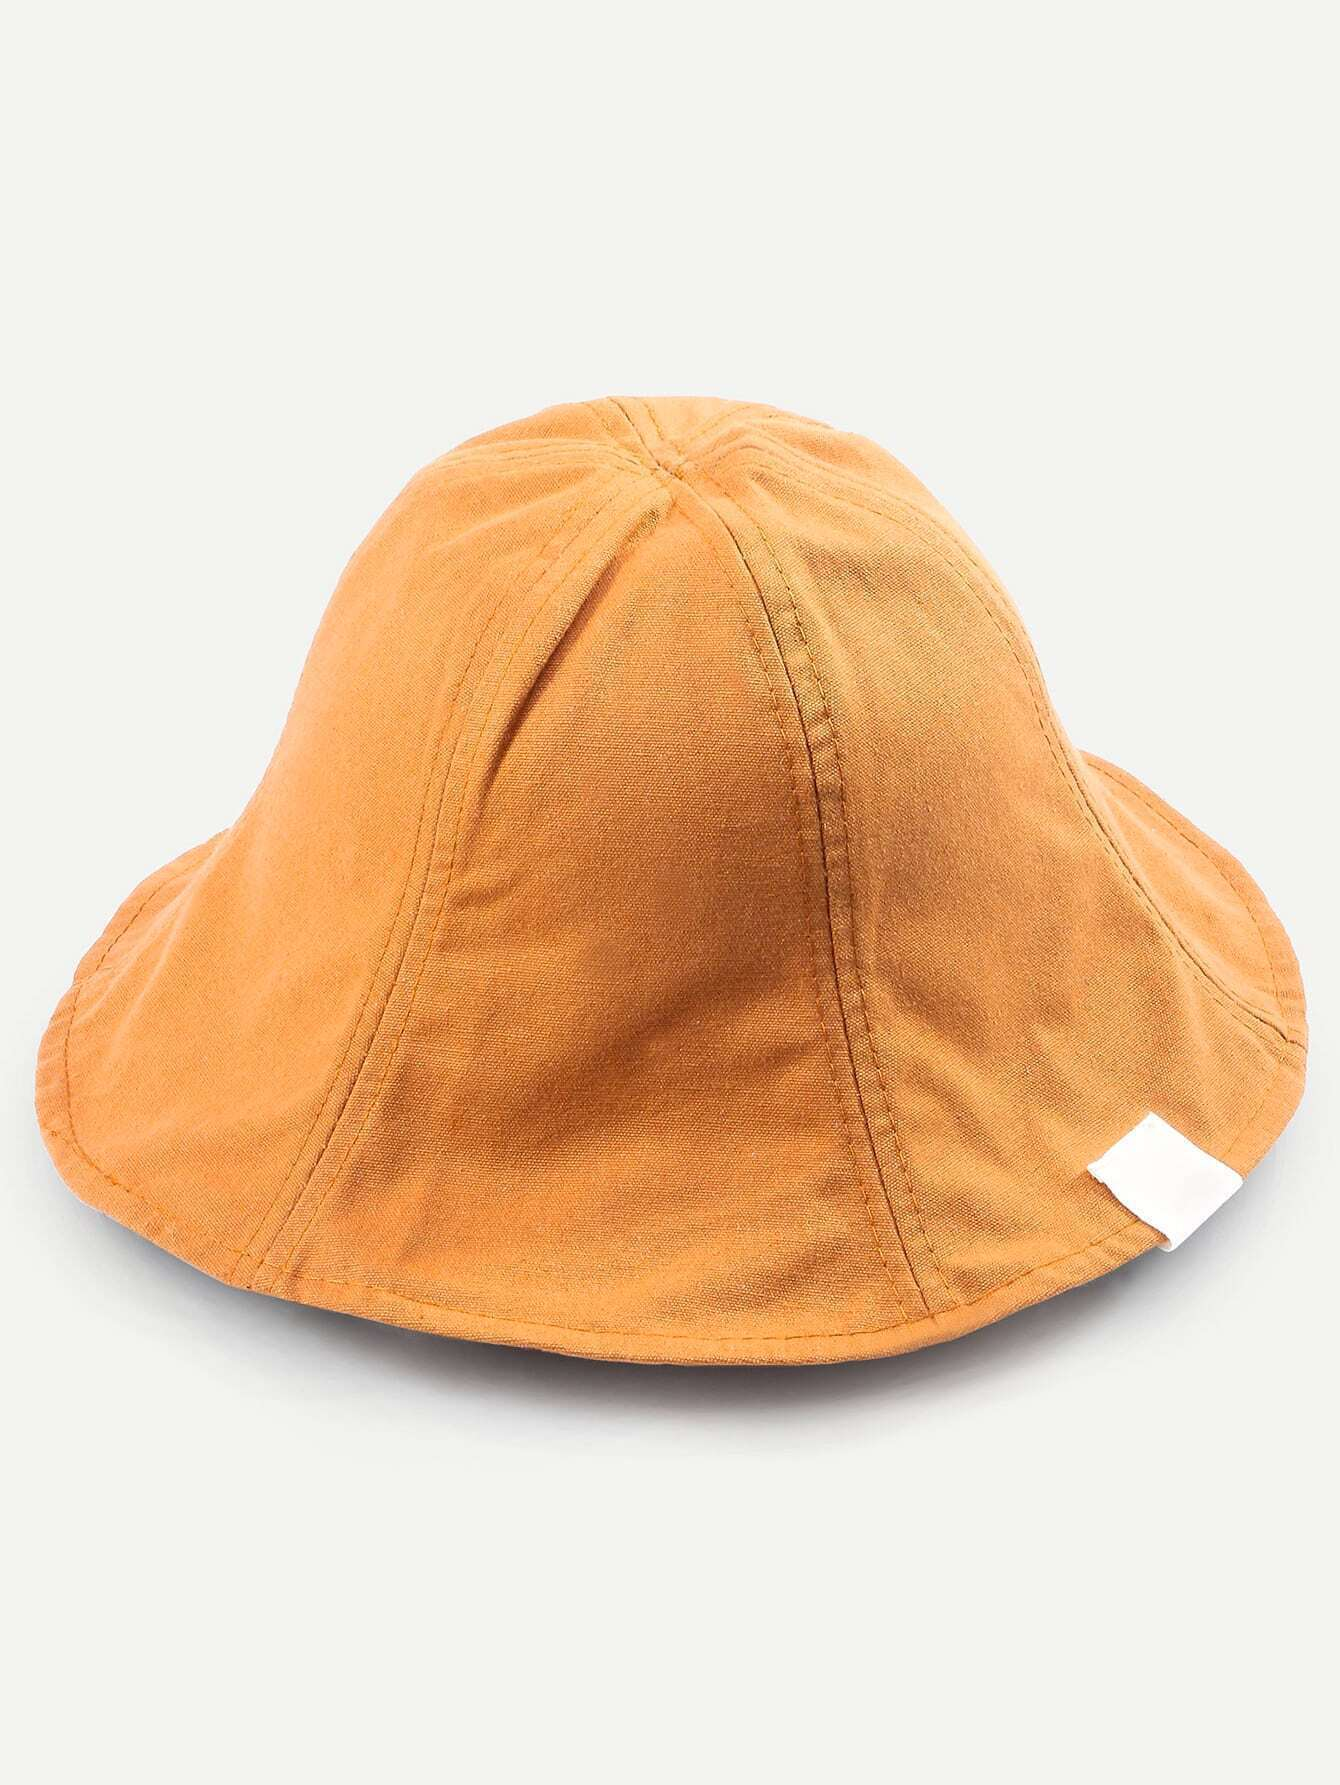 Custom Bucket Hats Australia No Minimum - Parchment N Lead 694050373ab